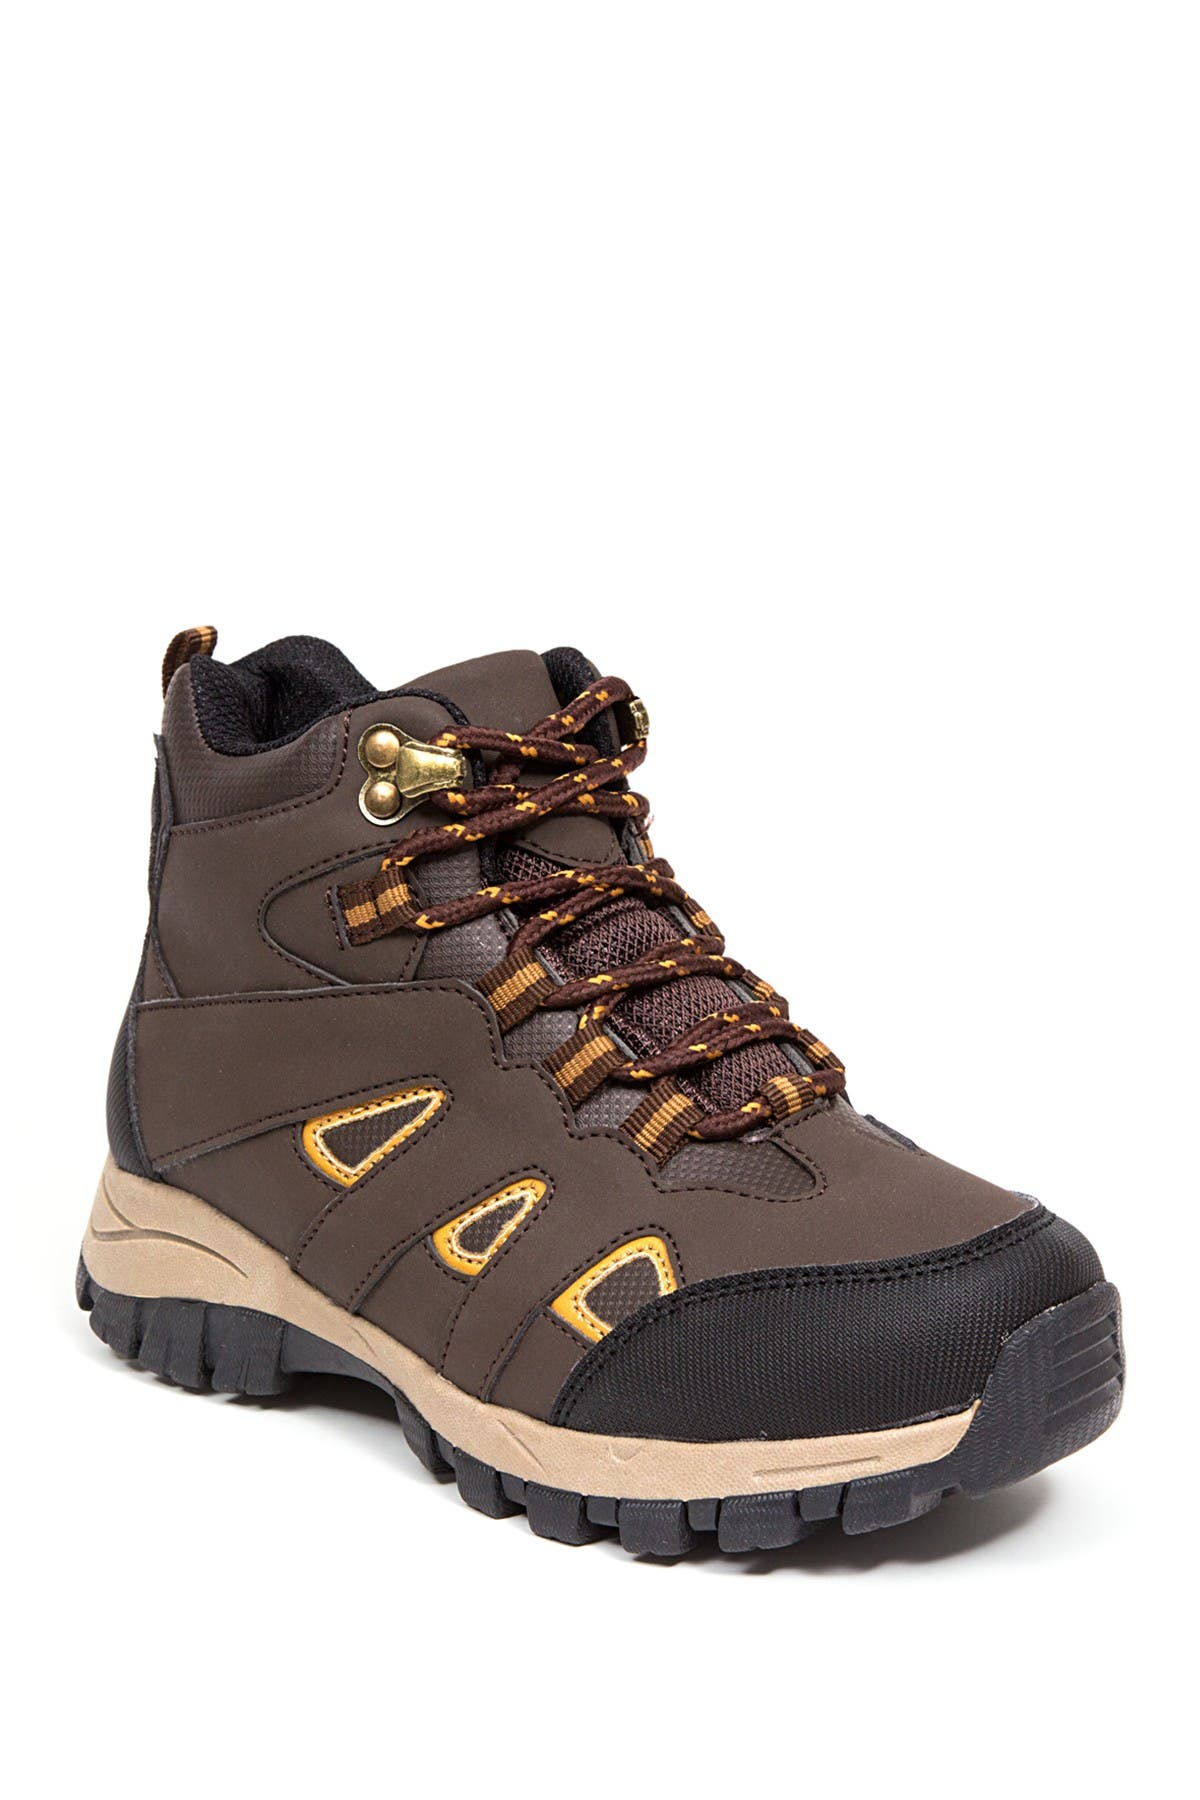 Image of Deer Stags Drew Lace-Up Waterproof Boot